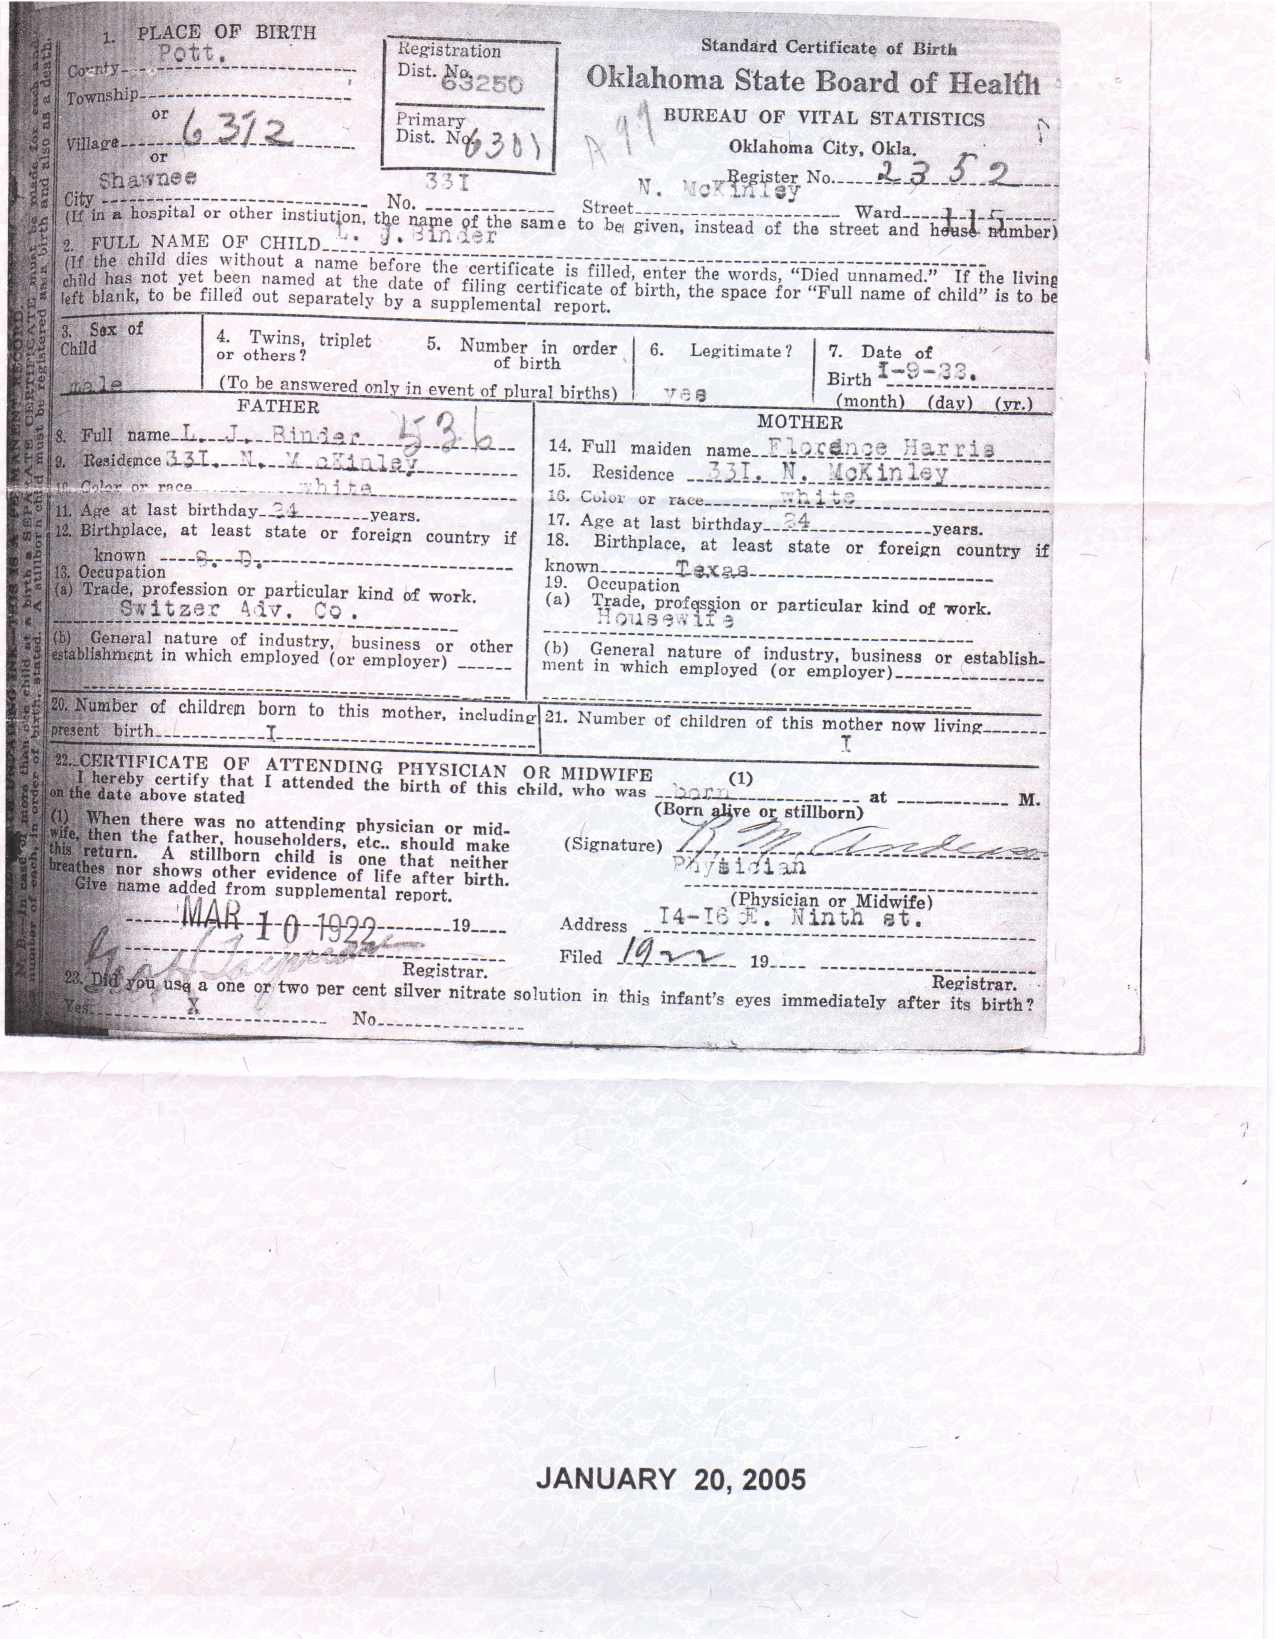 Life Of Ernst Jakob Binder Binder Family History And Genealogy